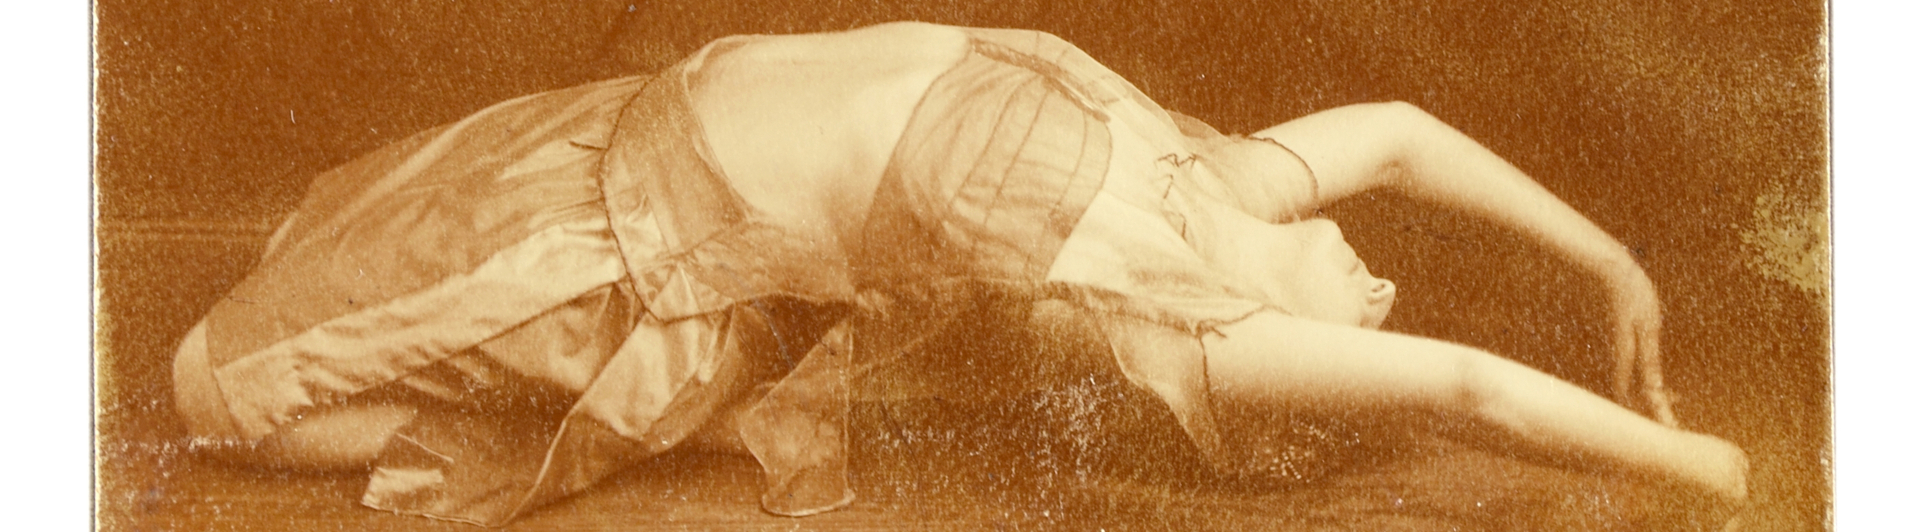 Old photographie showing a woman lying on the floor during a dance performance